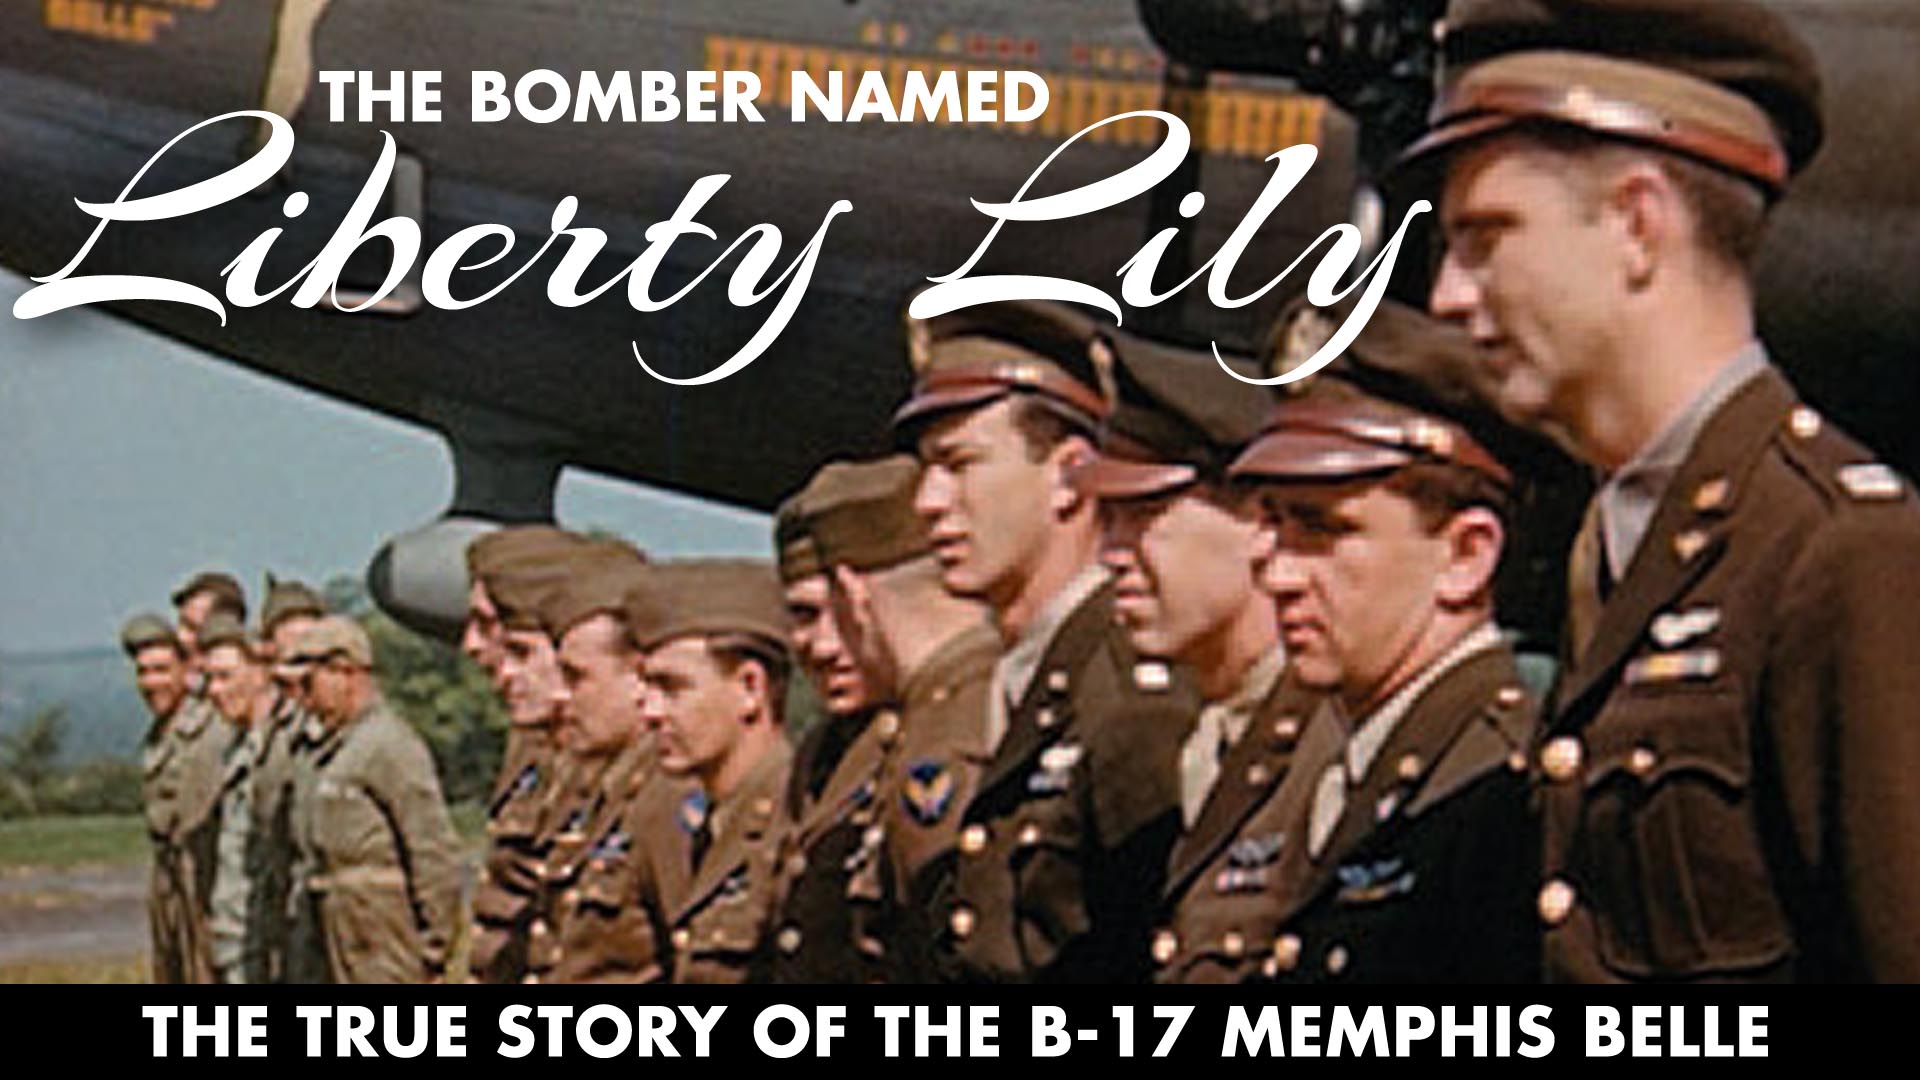 The Bomber Named Liberty Lily -